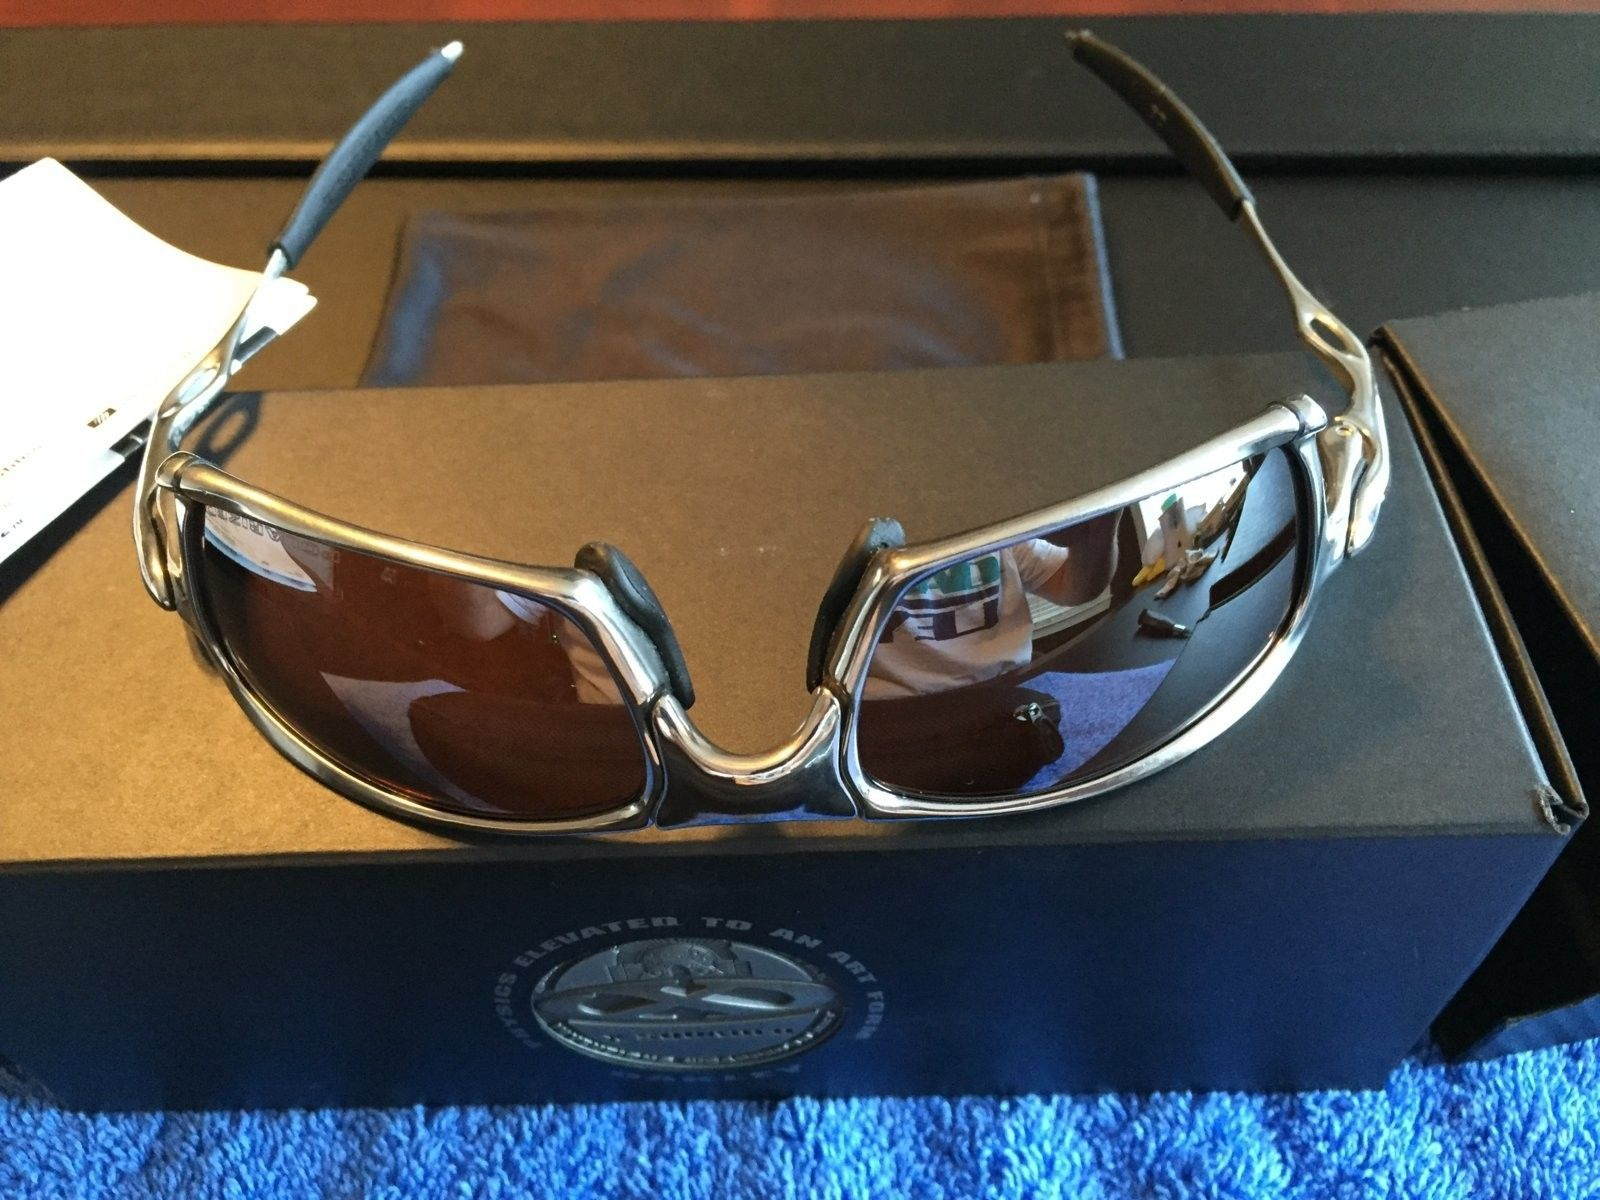 LNIB Polished XS/ VR28 lenses * Price drop* - IMG_1175.JPG